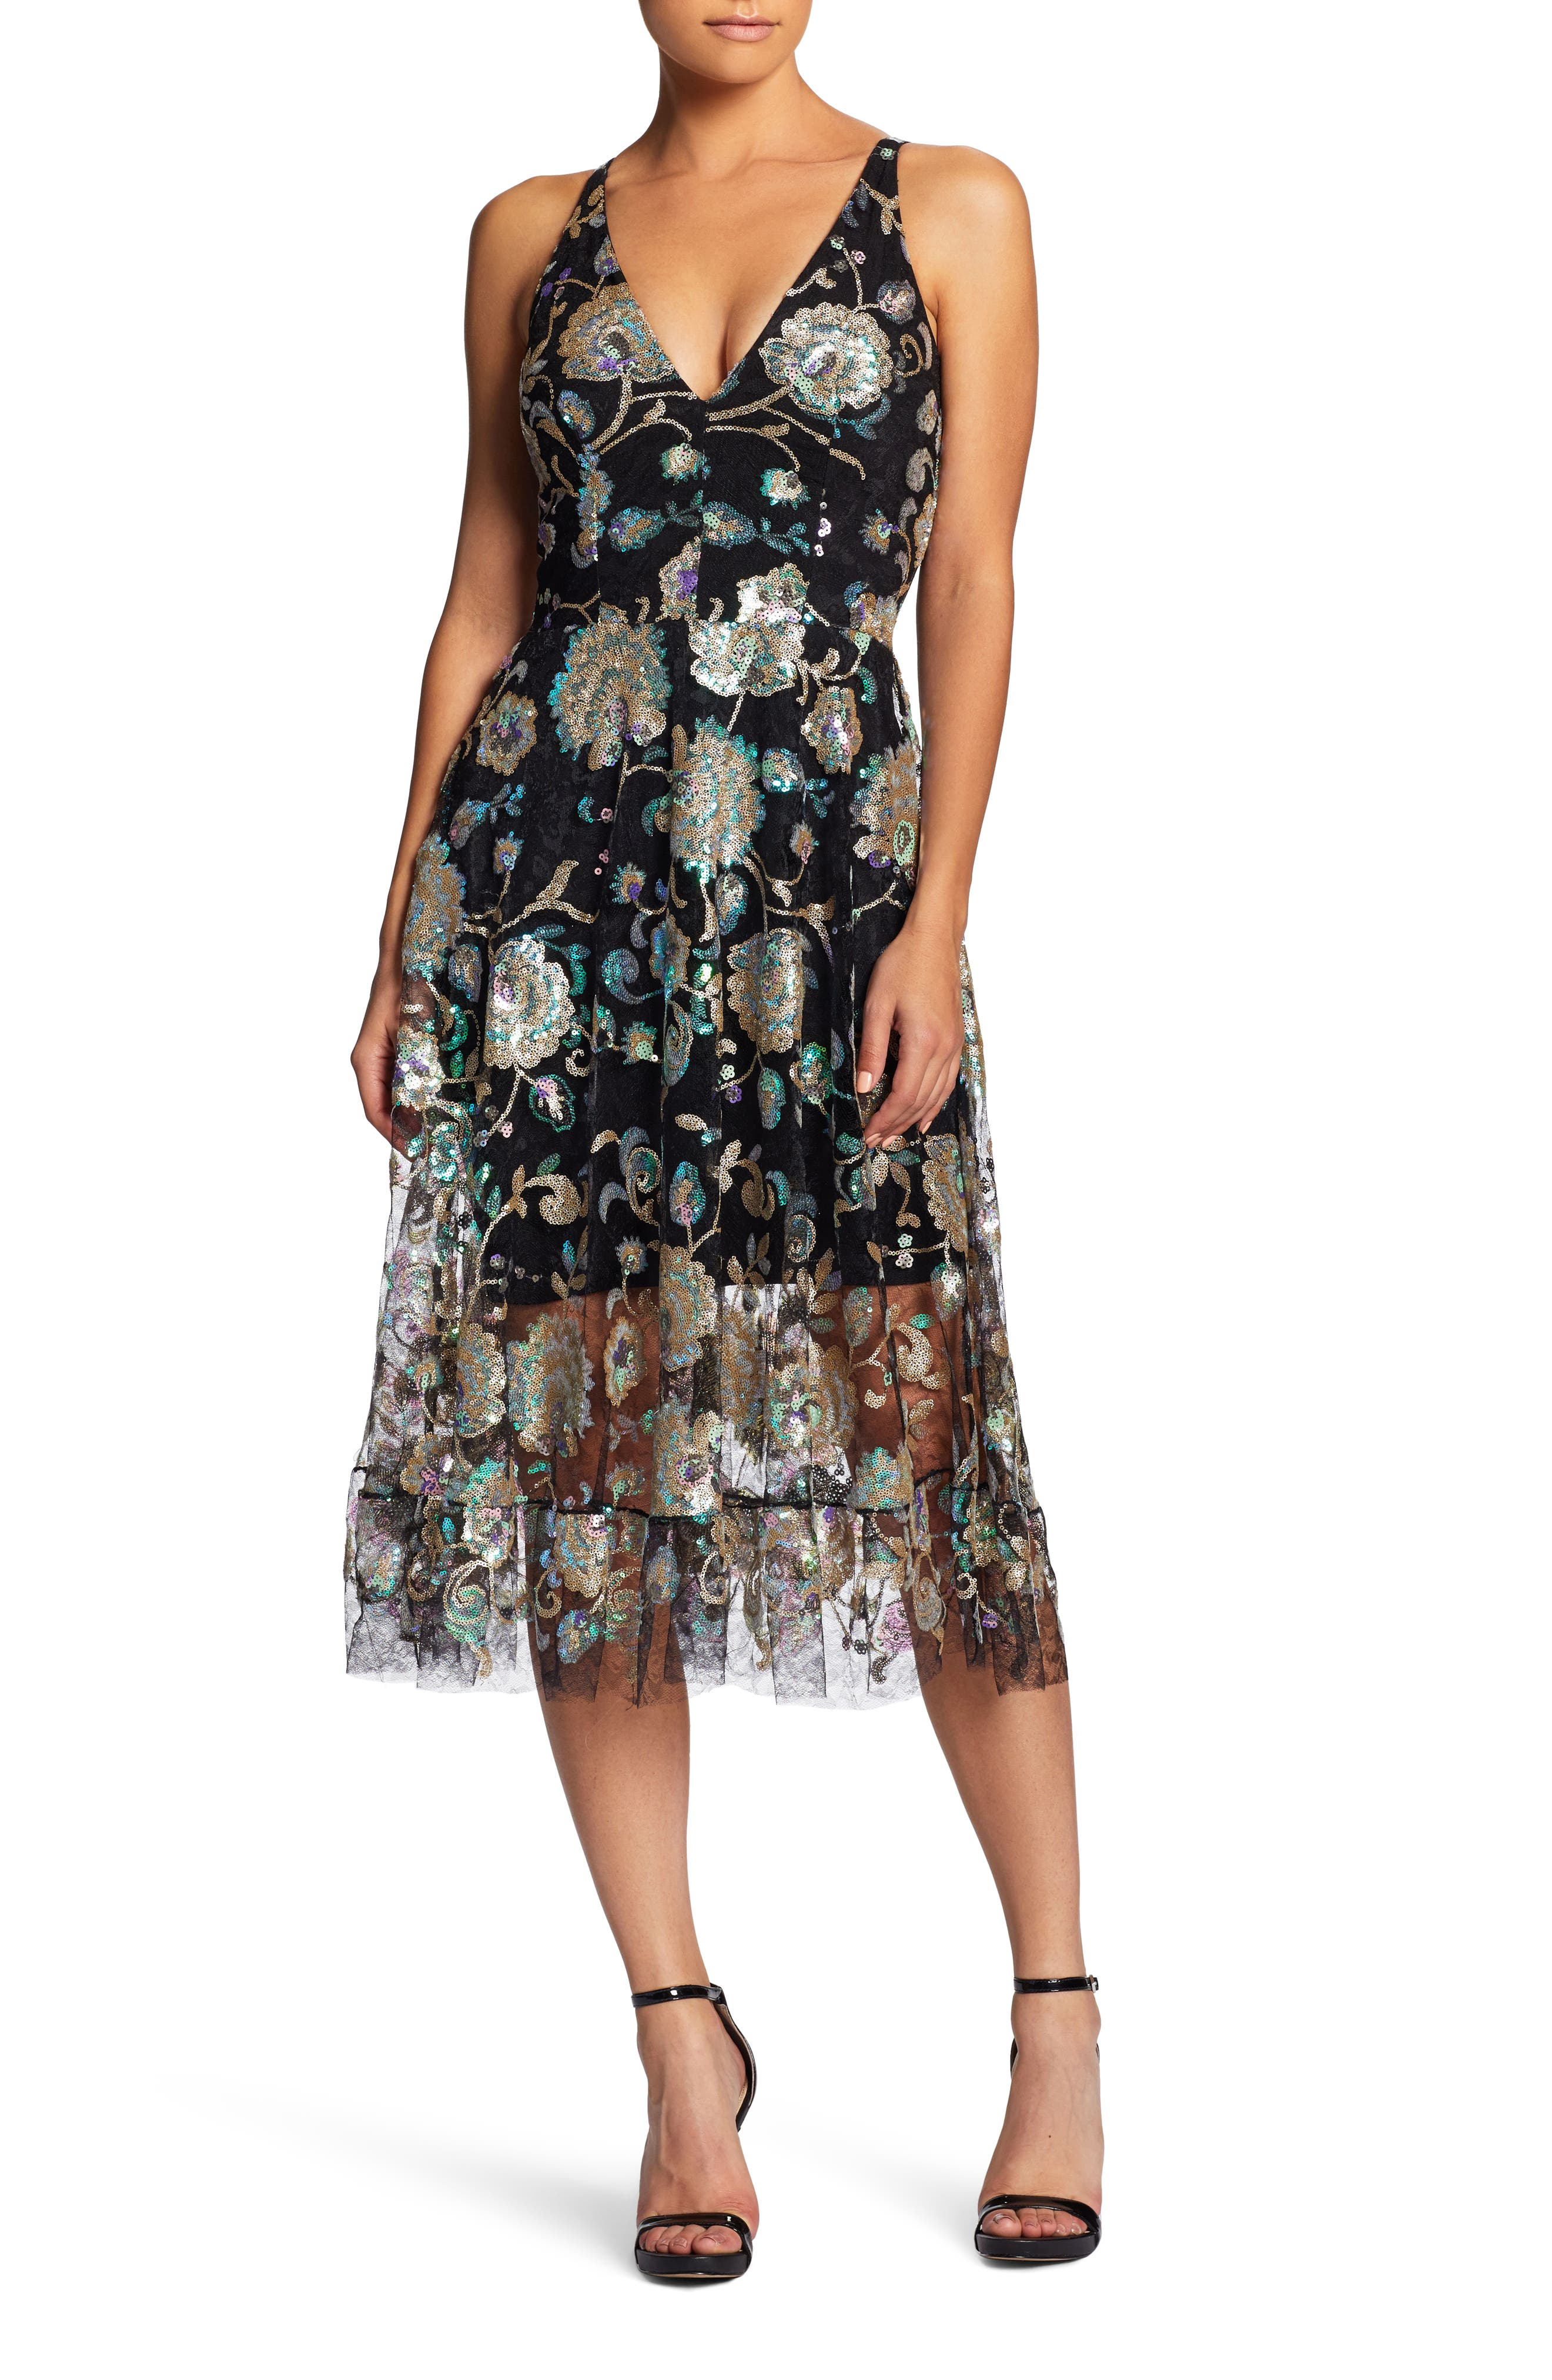 Audrey Sequin Embroidered Midi Dress,                         Main,                         color, Black/ Iridescent Floral